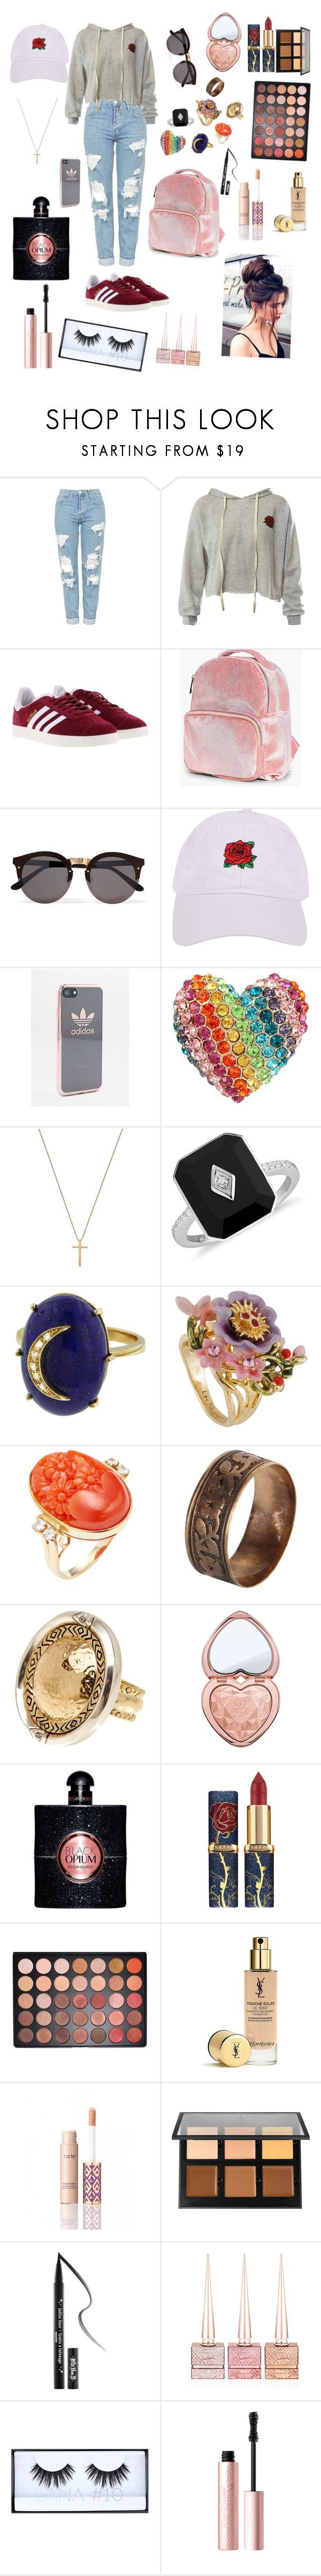 Roses & Thorns by instaioistyle on Polyvore featuring Topshop, Sans Souci, adidas